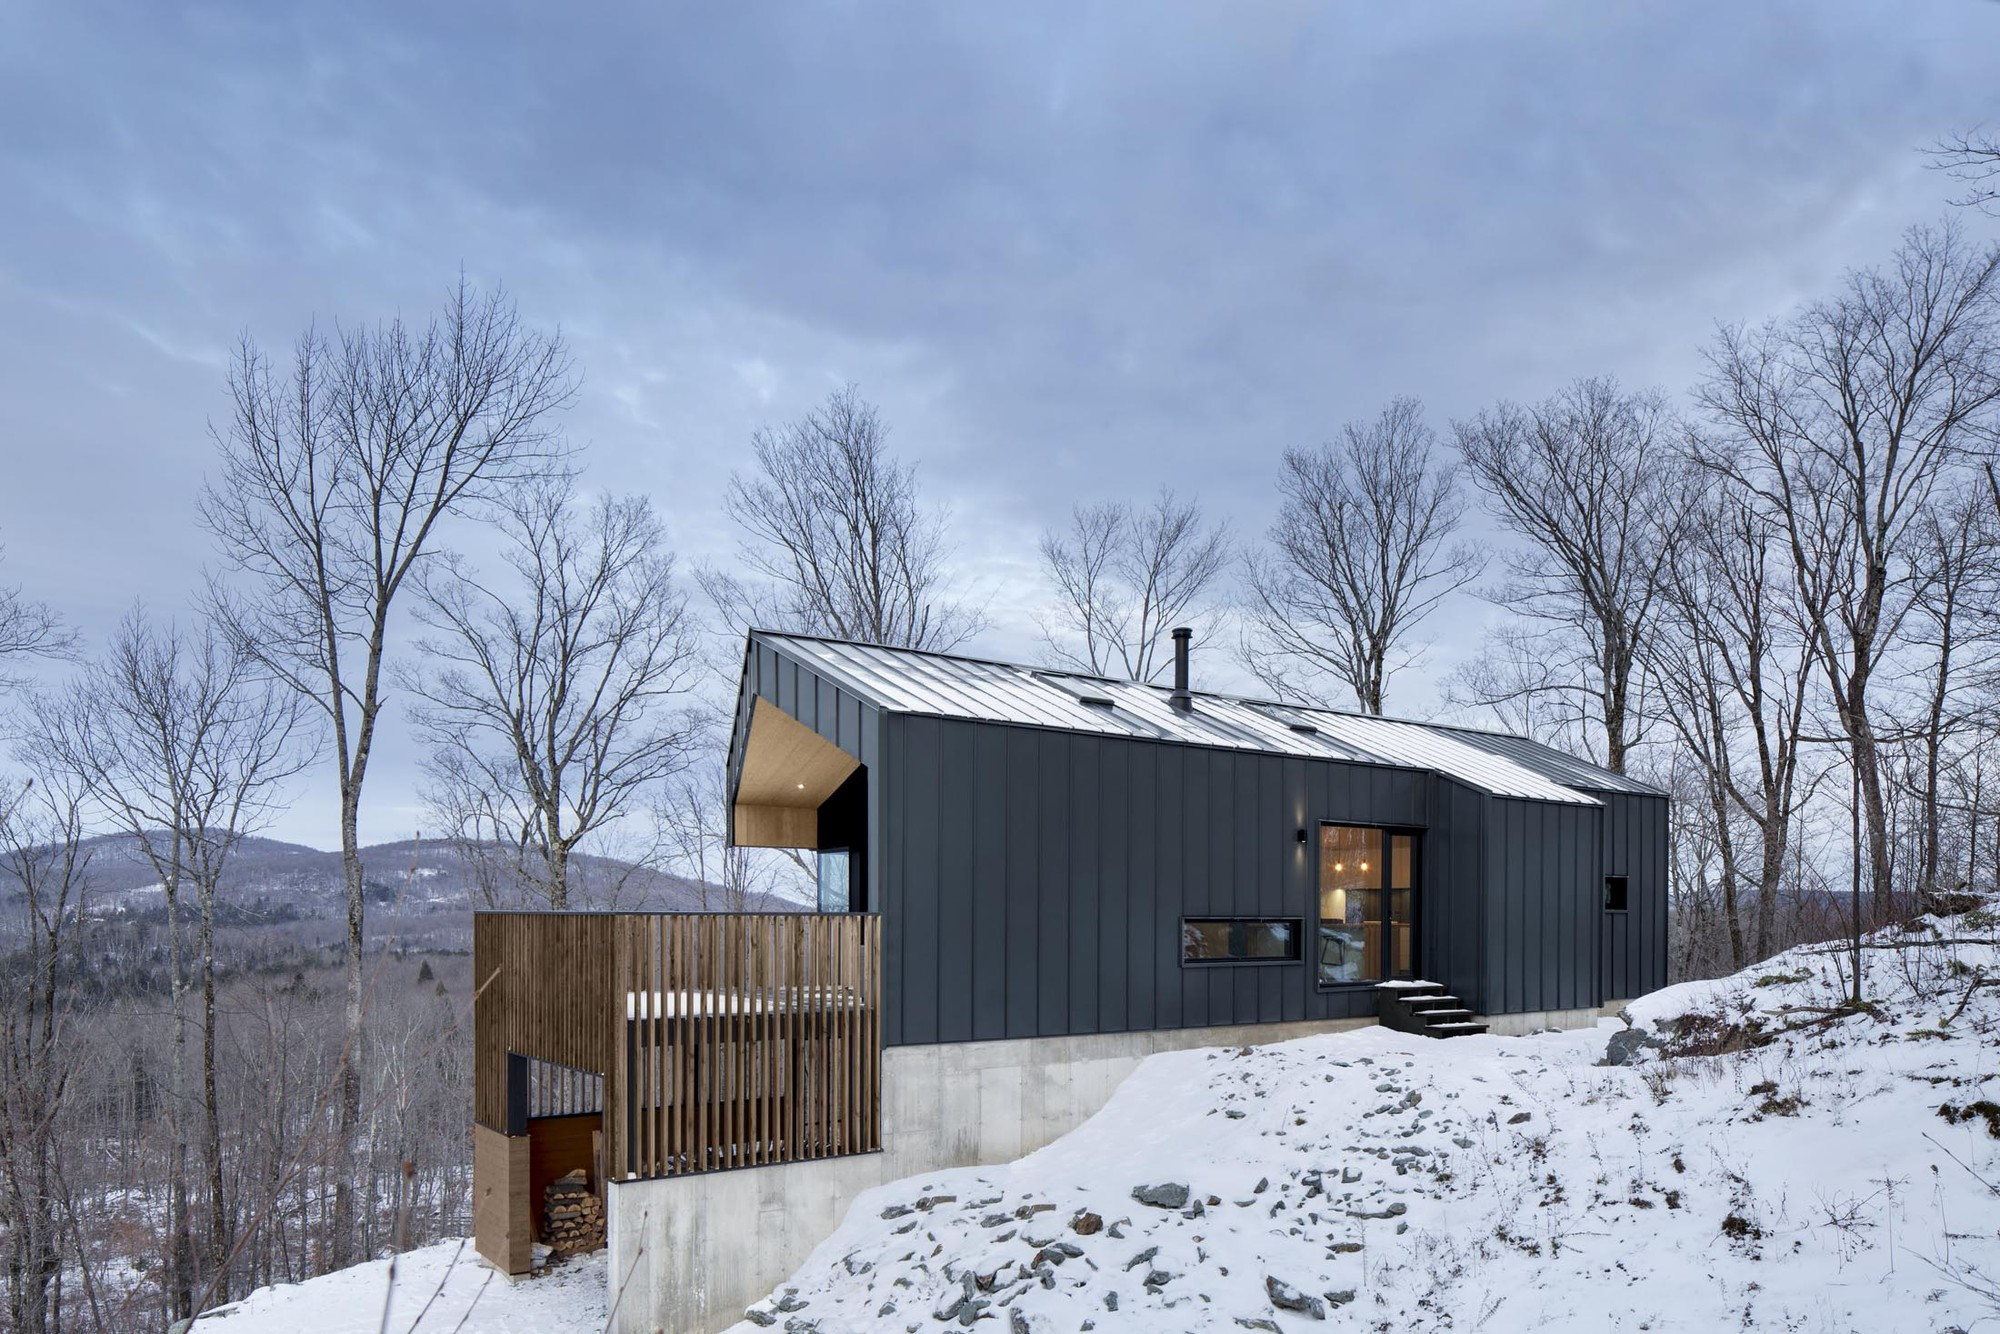 Bolton Residence / NatureHumaine, © Adrien Williams